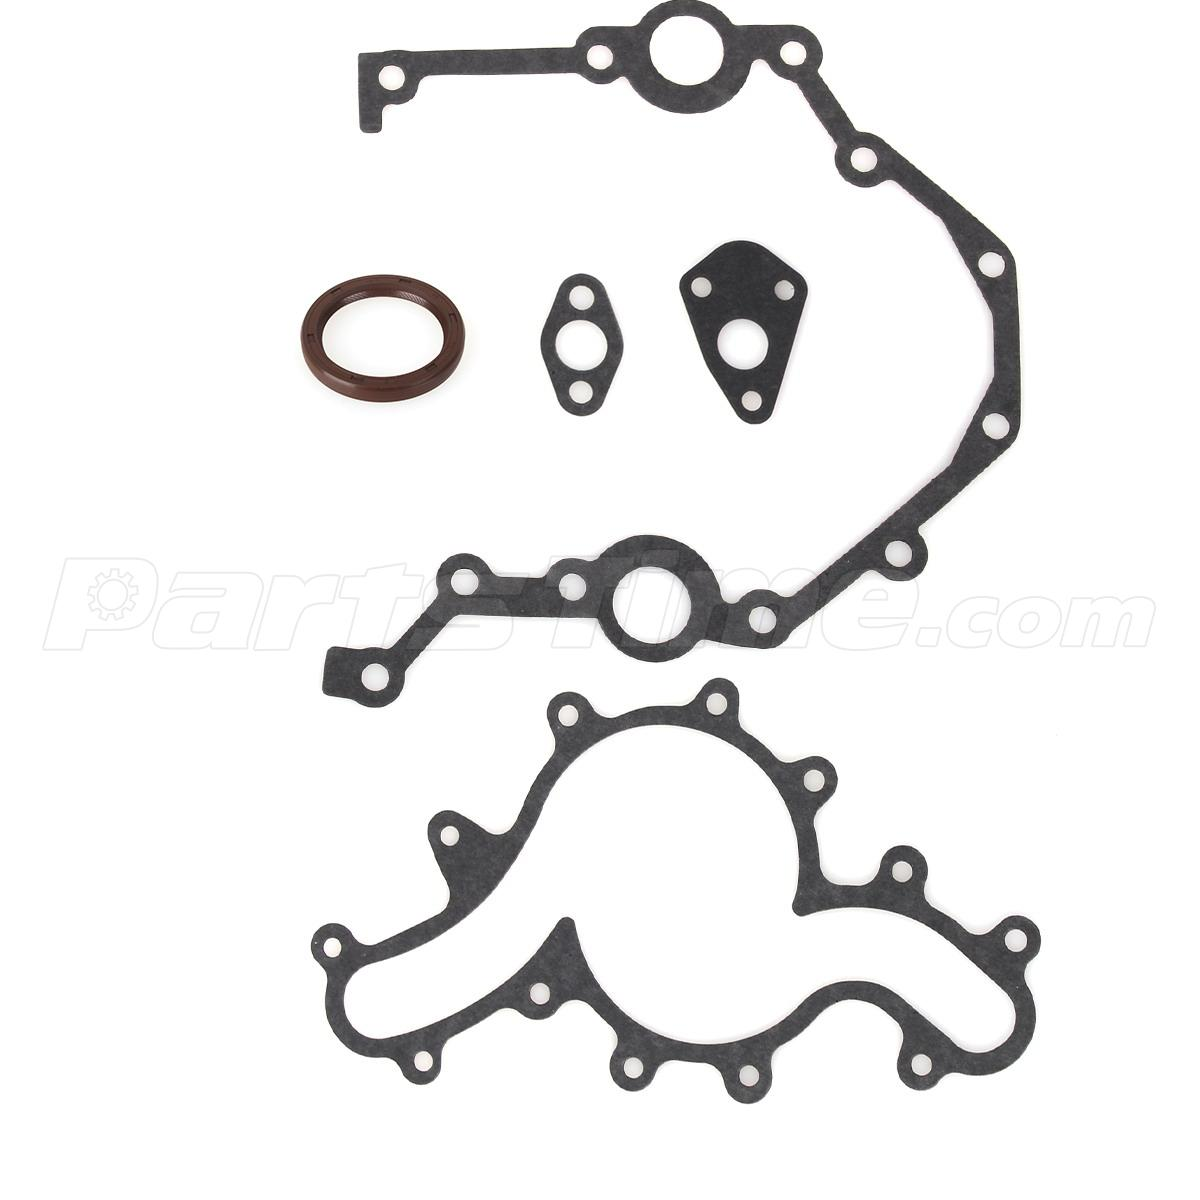 Service manual [1997 Ford Explorer Timing Cover Gasket